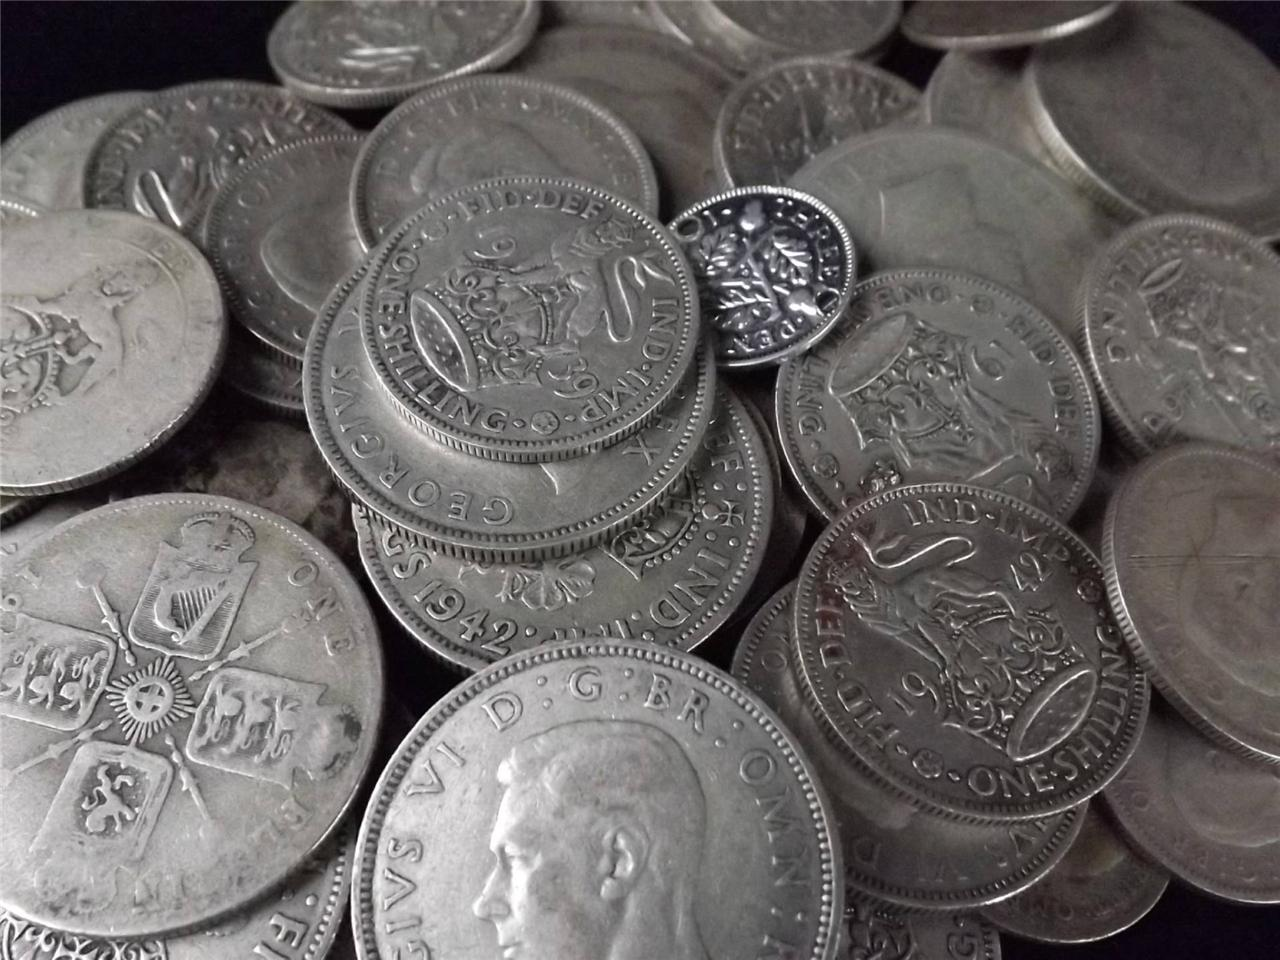 Buy Junk Silver Bags of Silver Quarters or Dimes